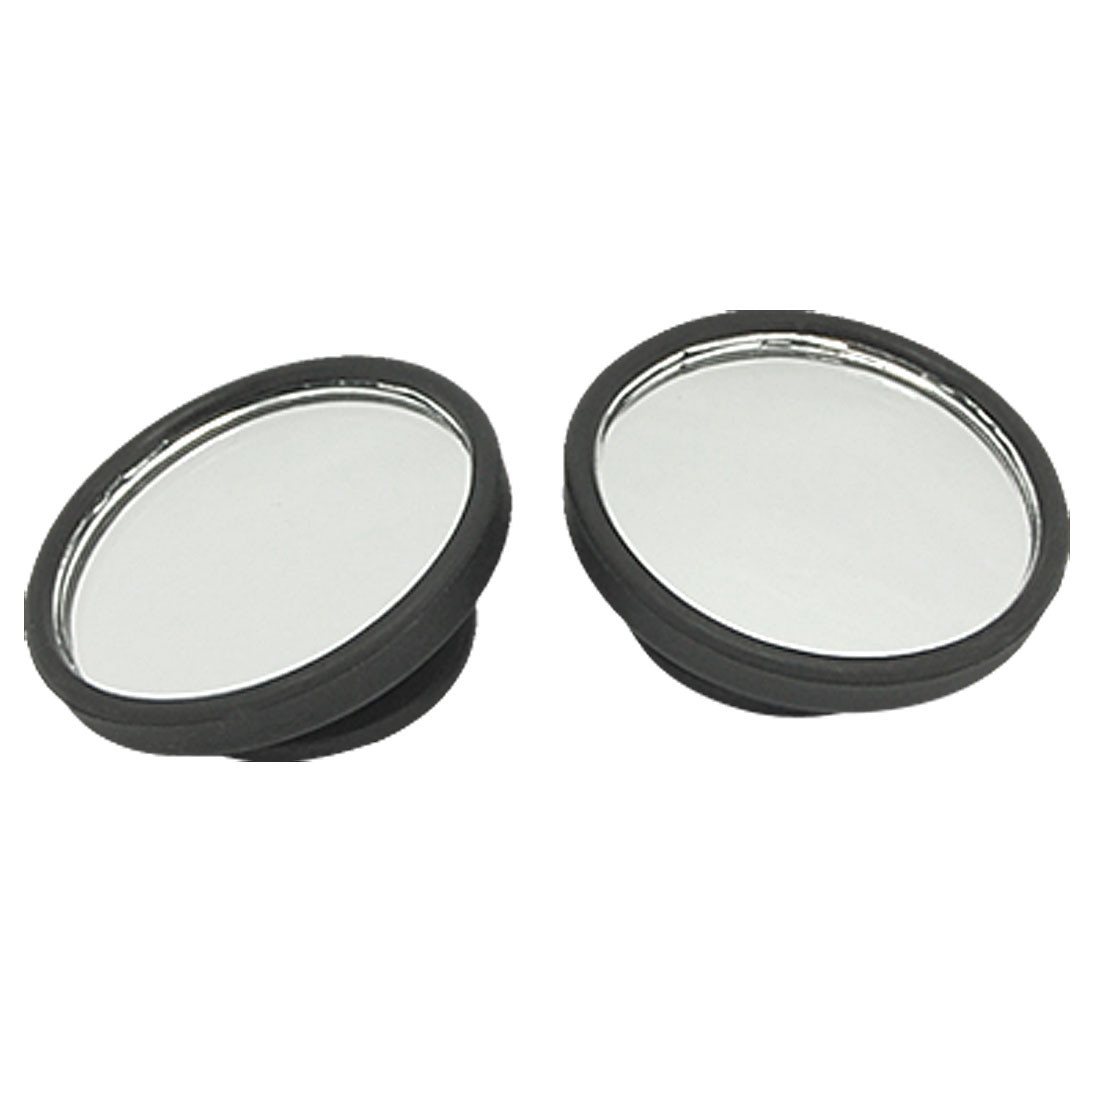 Universal Car Round Rear-View Rearview Blind Spot Mirror 2 Pcs